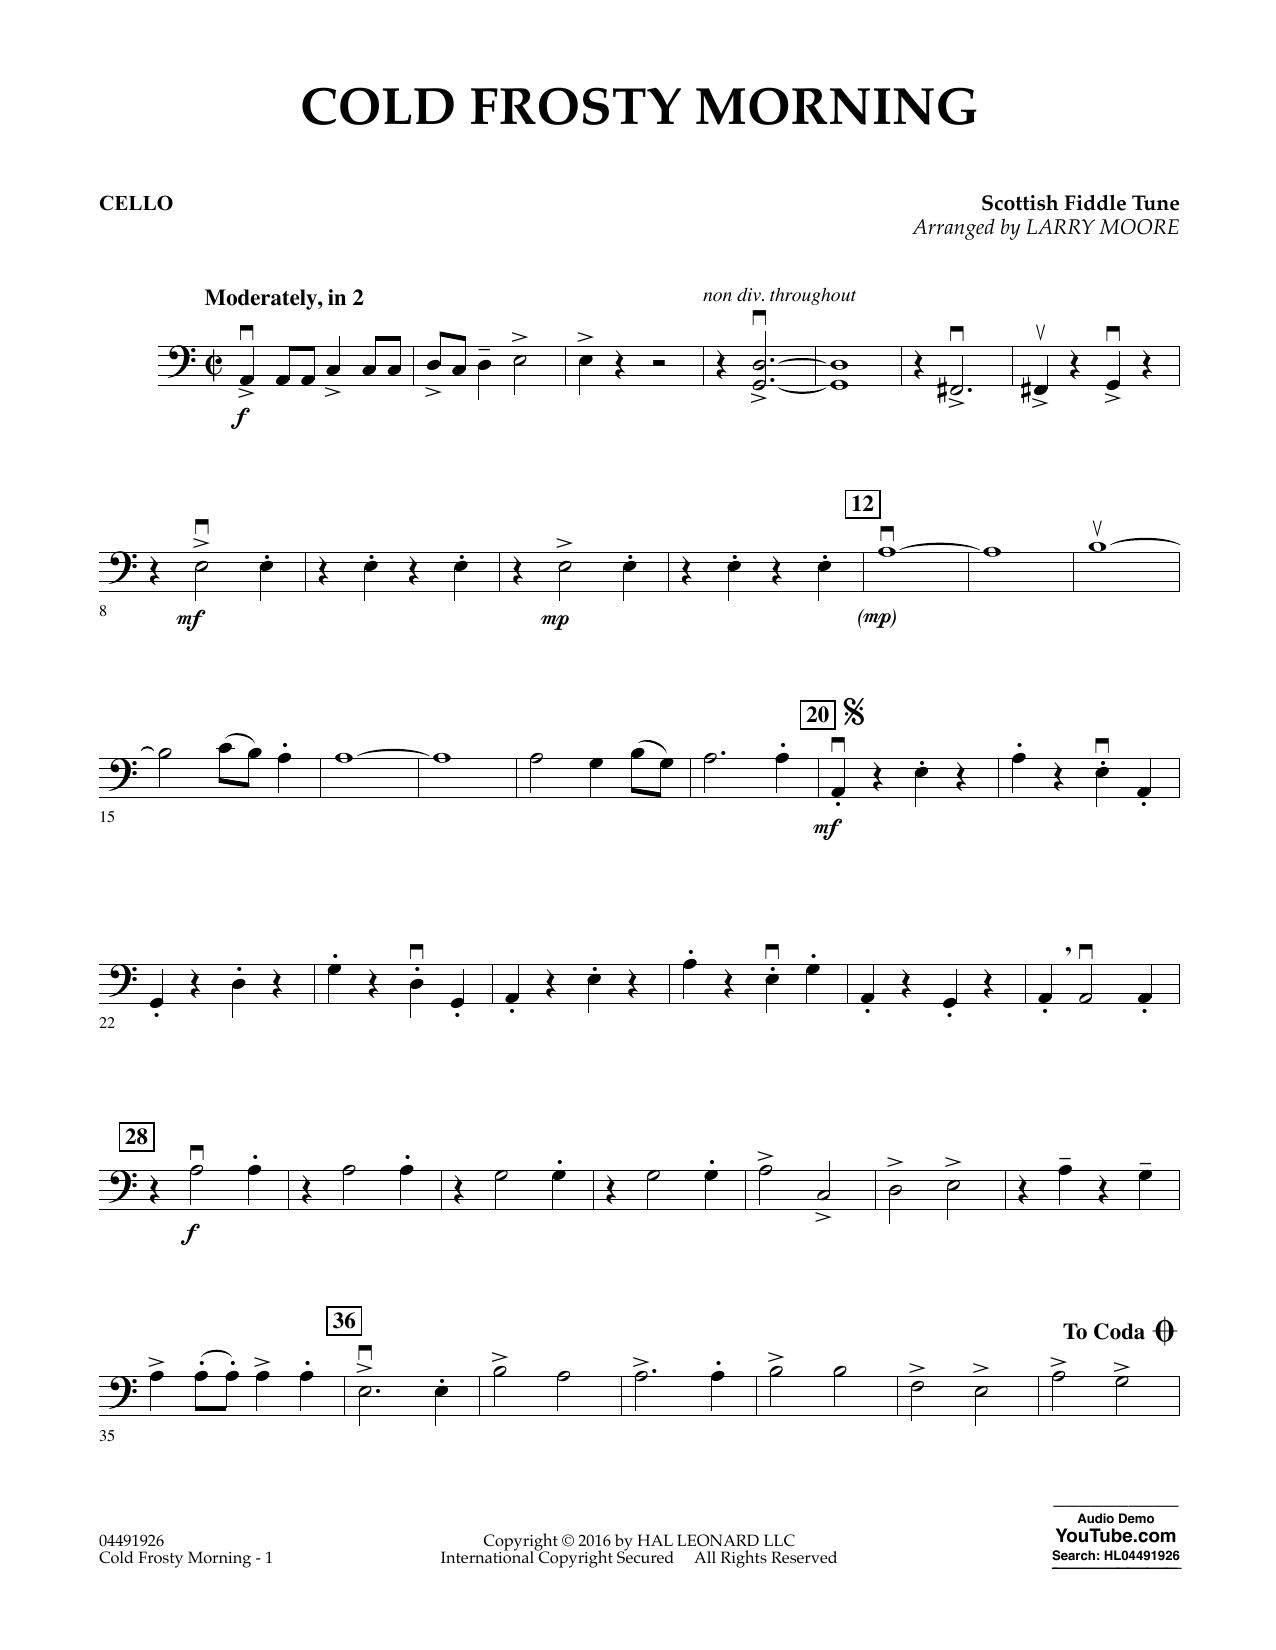 Cold Frosty Morning - Cello Sheet Music